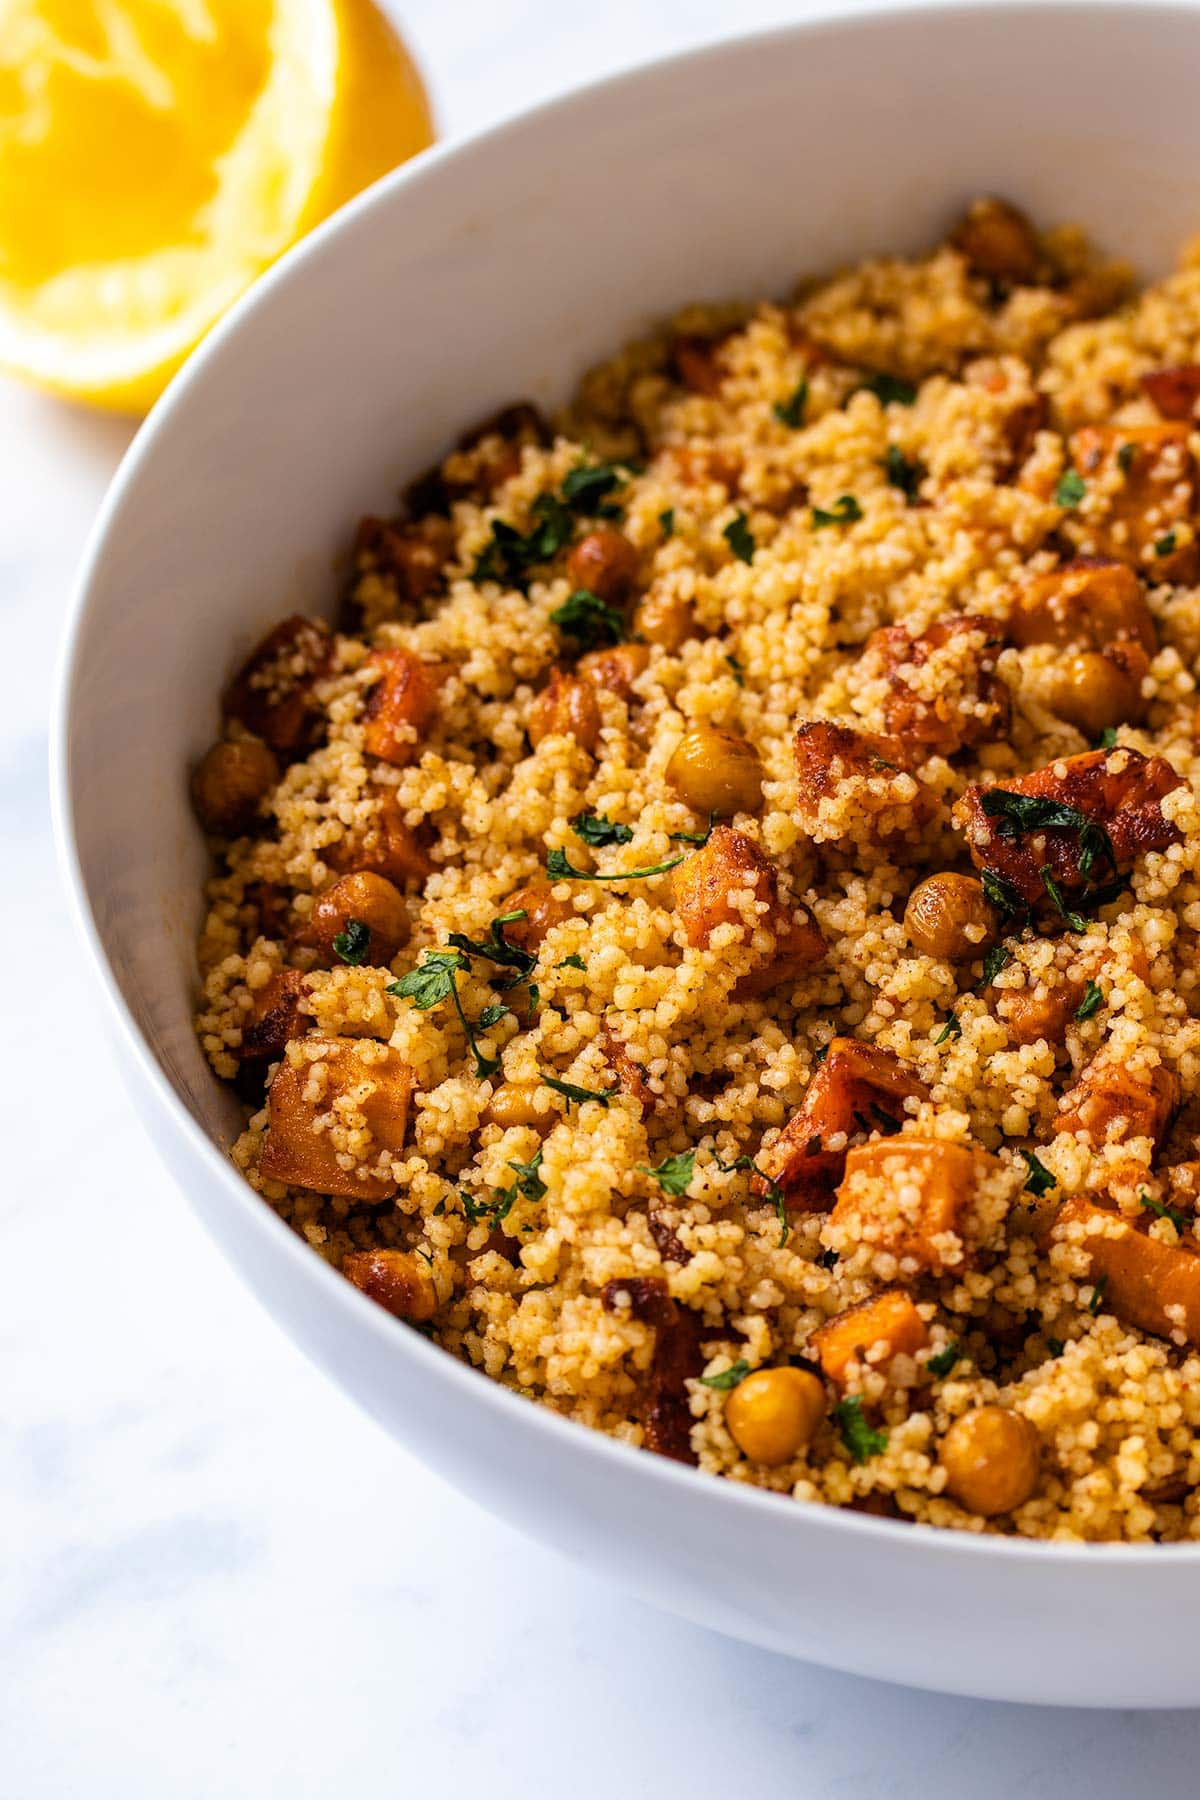 moroccan couscous in a white bowl with a squeezed lemon in the background